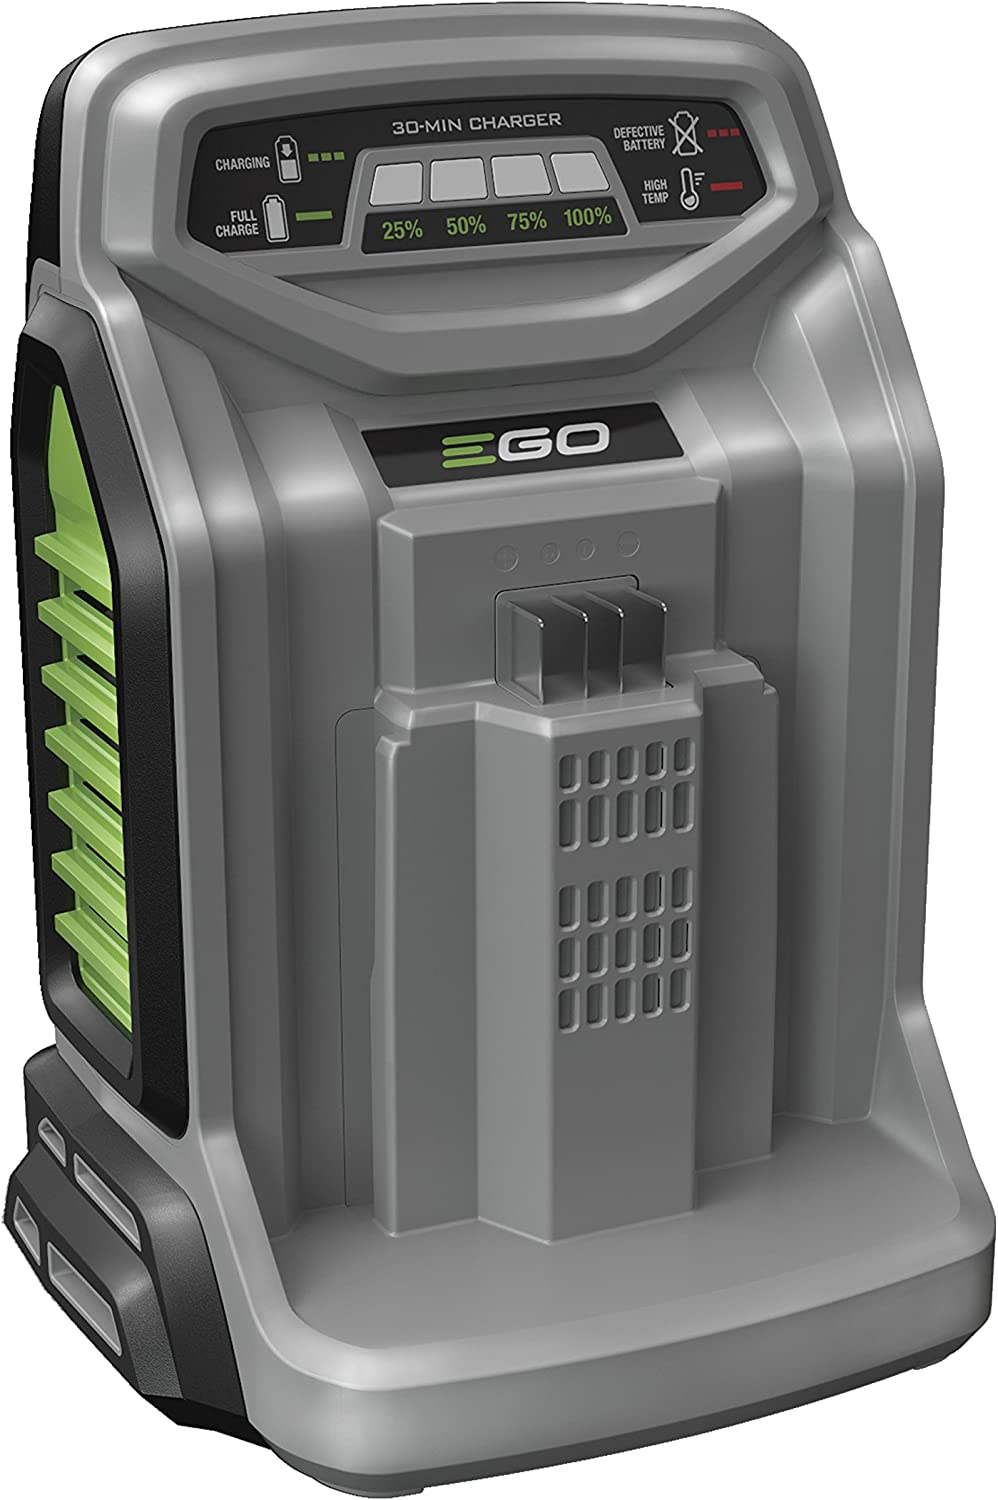 EGO Power CH5500 56-Volt Lithium-ion Rapid Lawn Mower Blower Charger